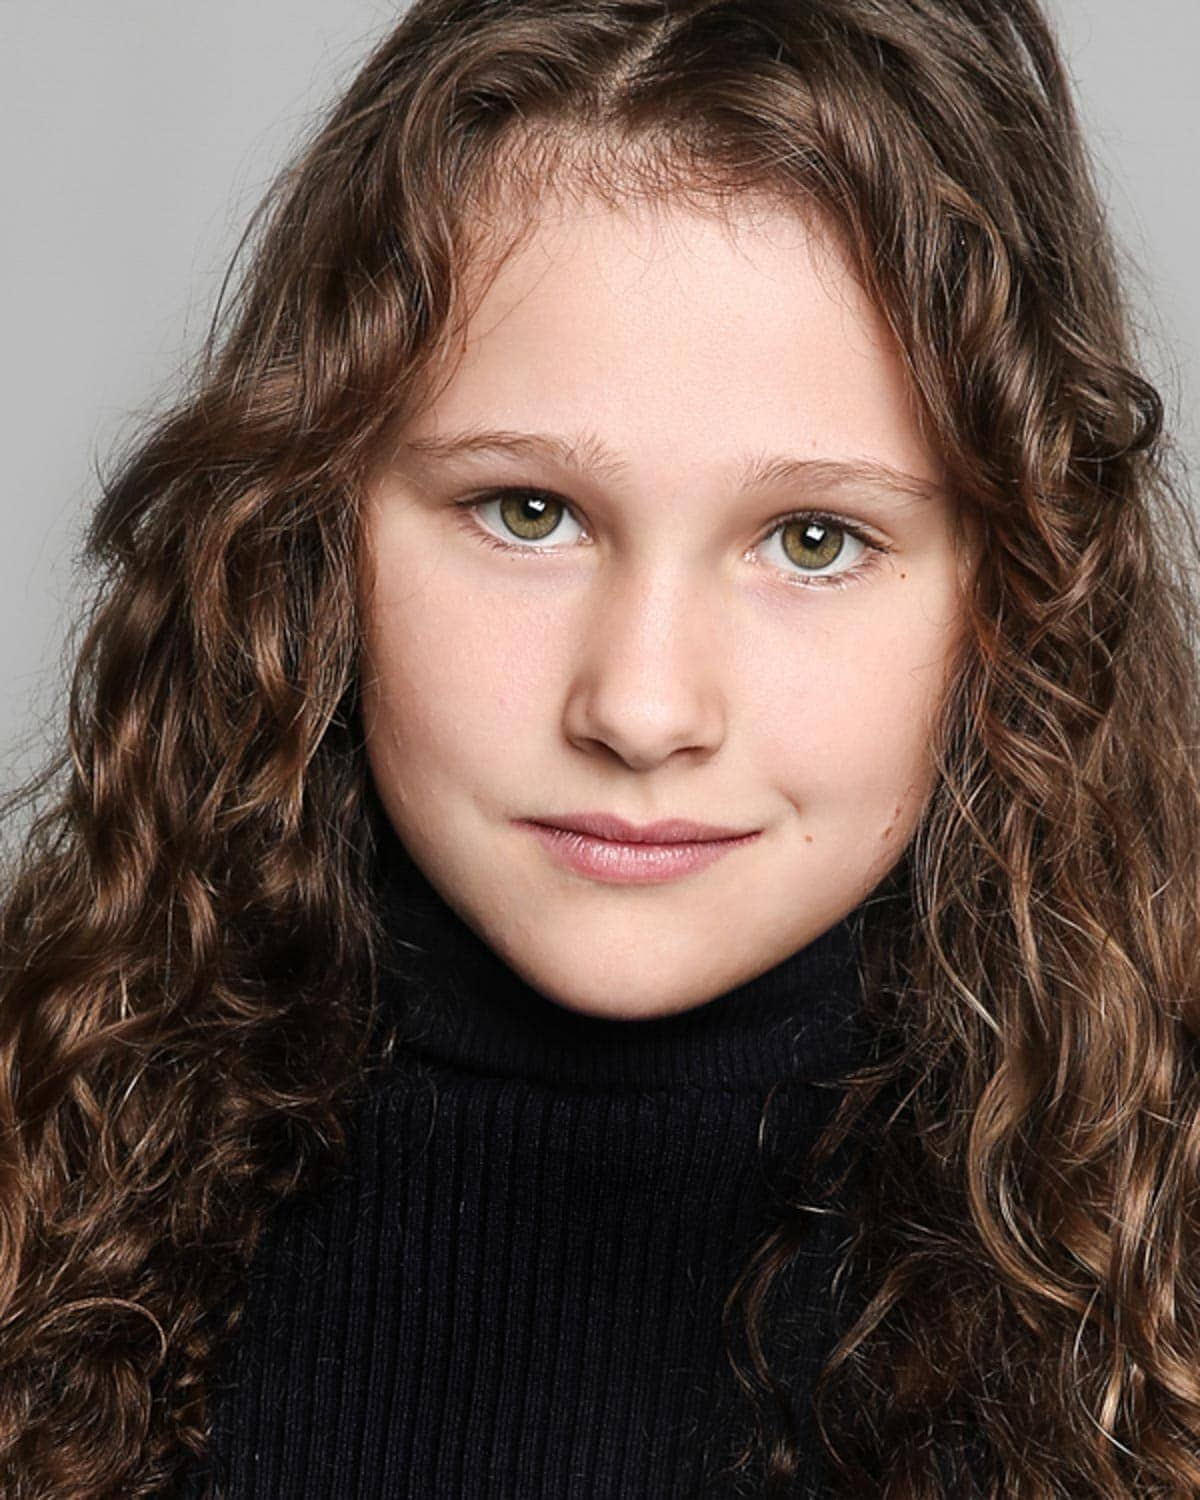 headshot of a young actress in manchester